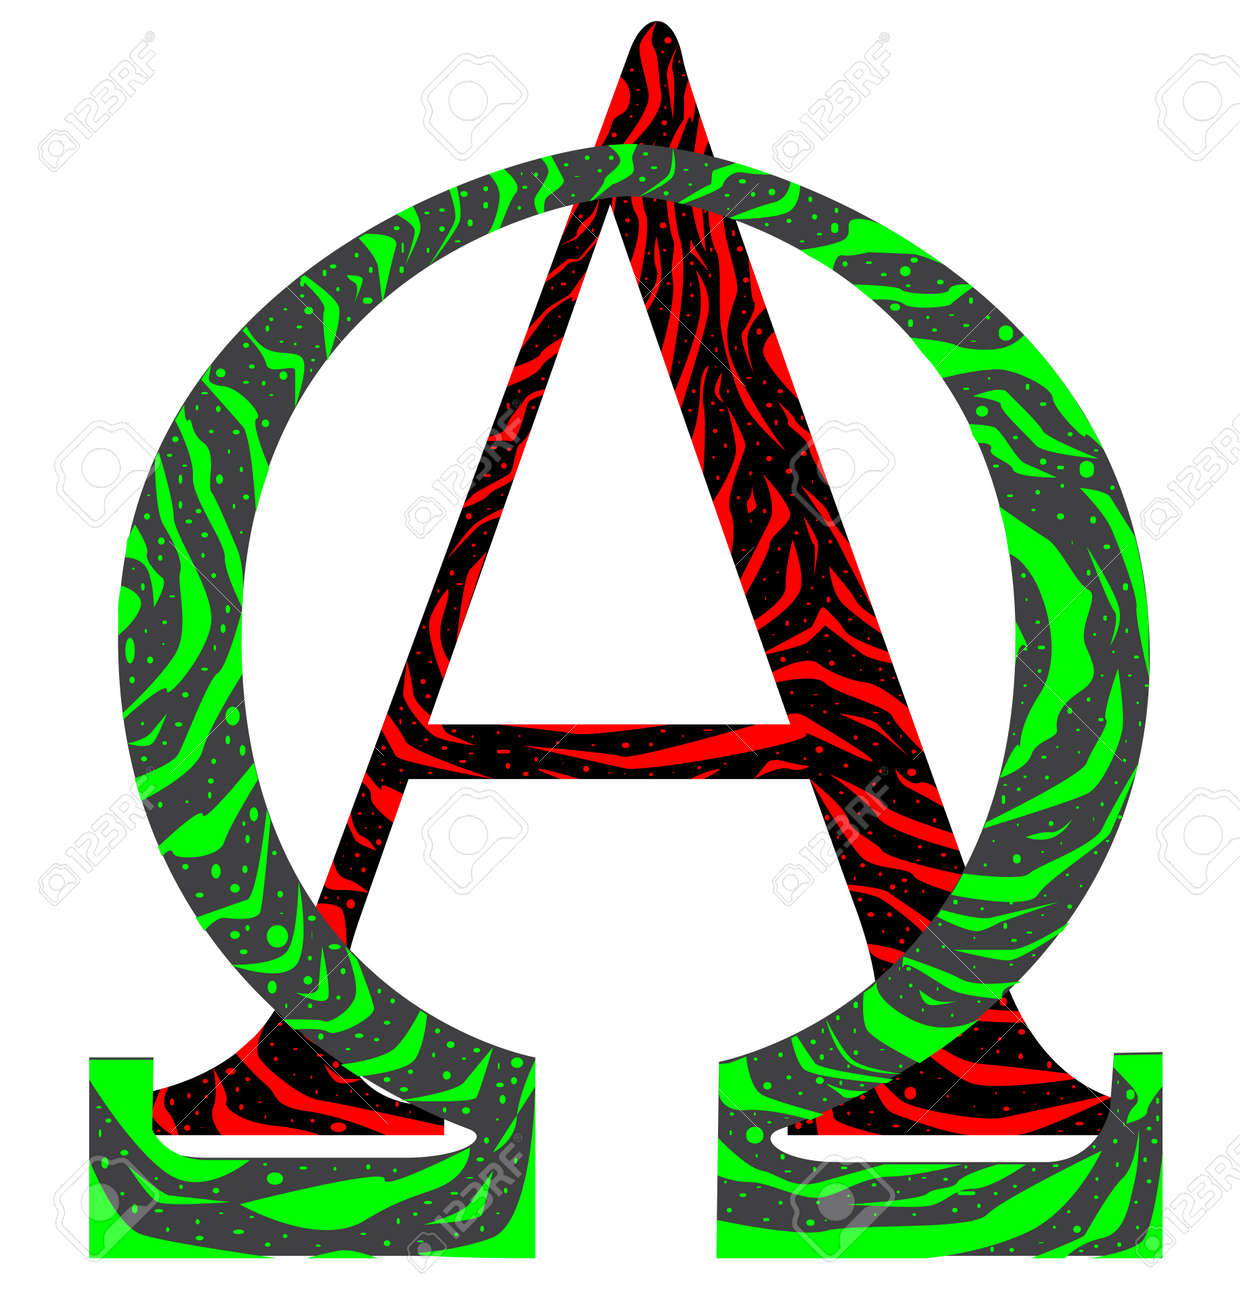 The Alpha Omega Letters From The Greek Alphabet Royalty Free